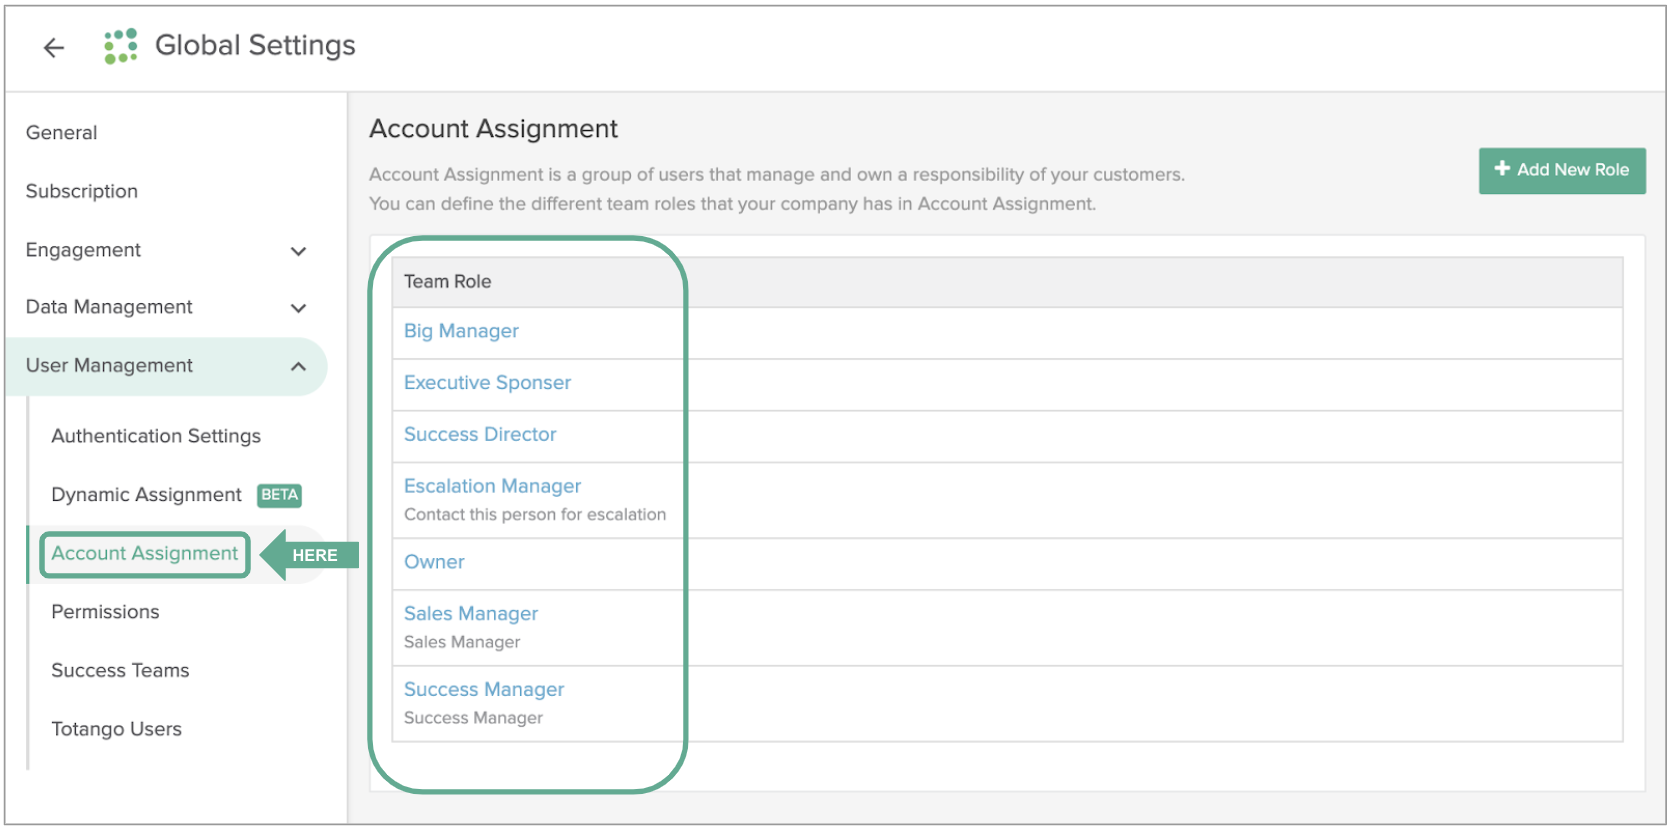 Account_Assignment_Roles_2__Totango__2020-01-02.png